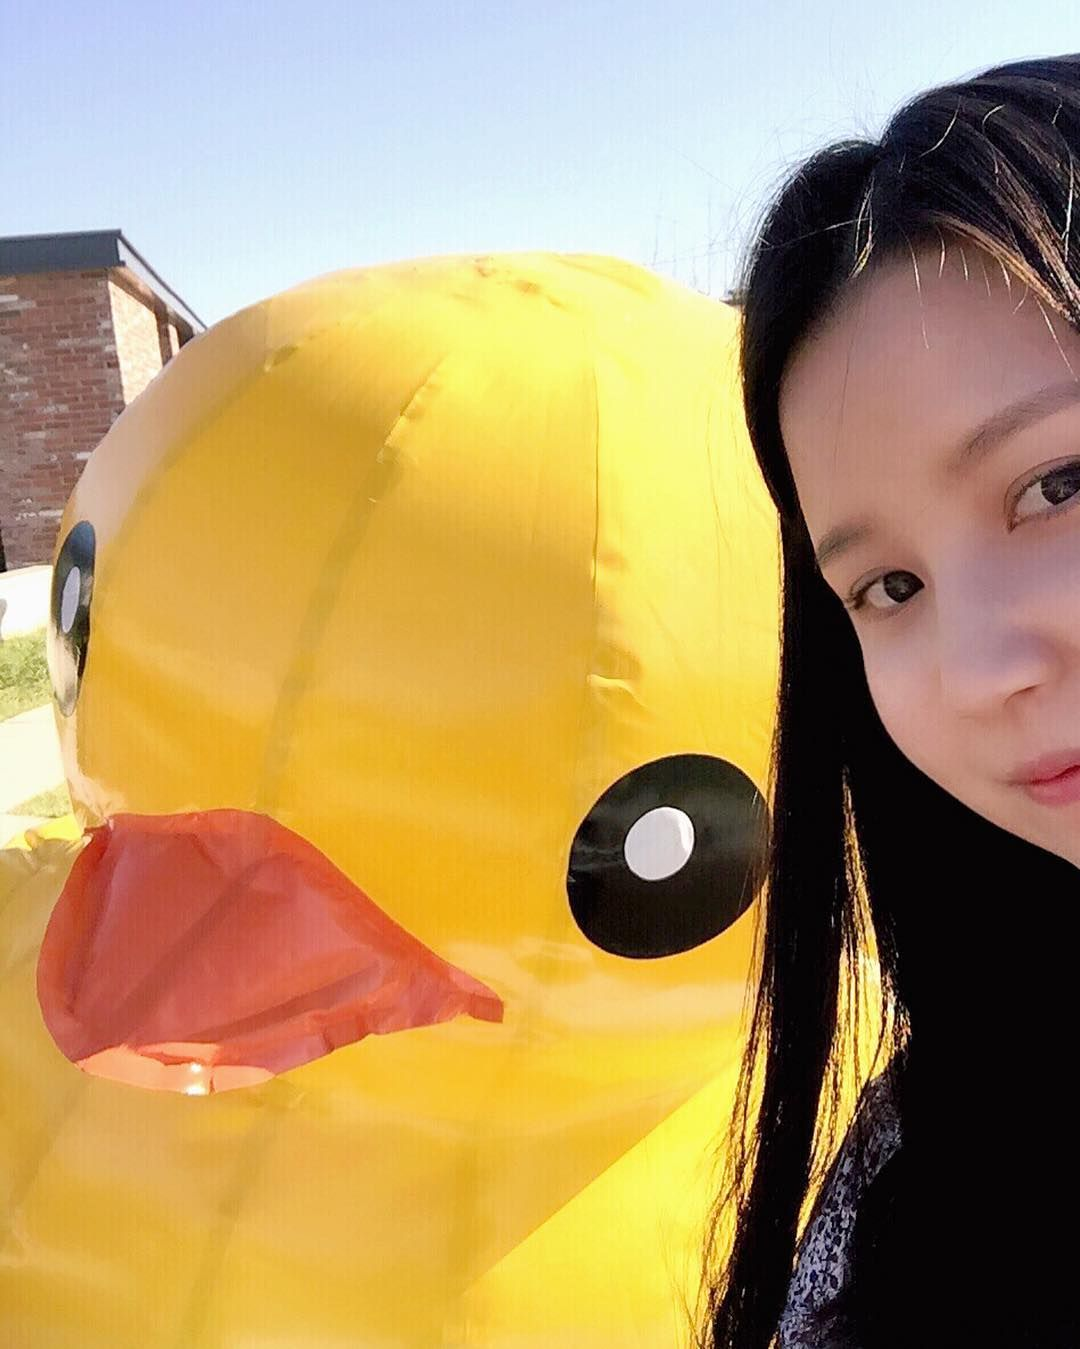 #셀카 #셀피 #러버덕  #selfie #rubberduck #dailypic by luvlyduckling